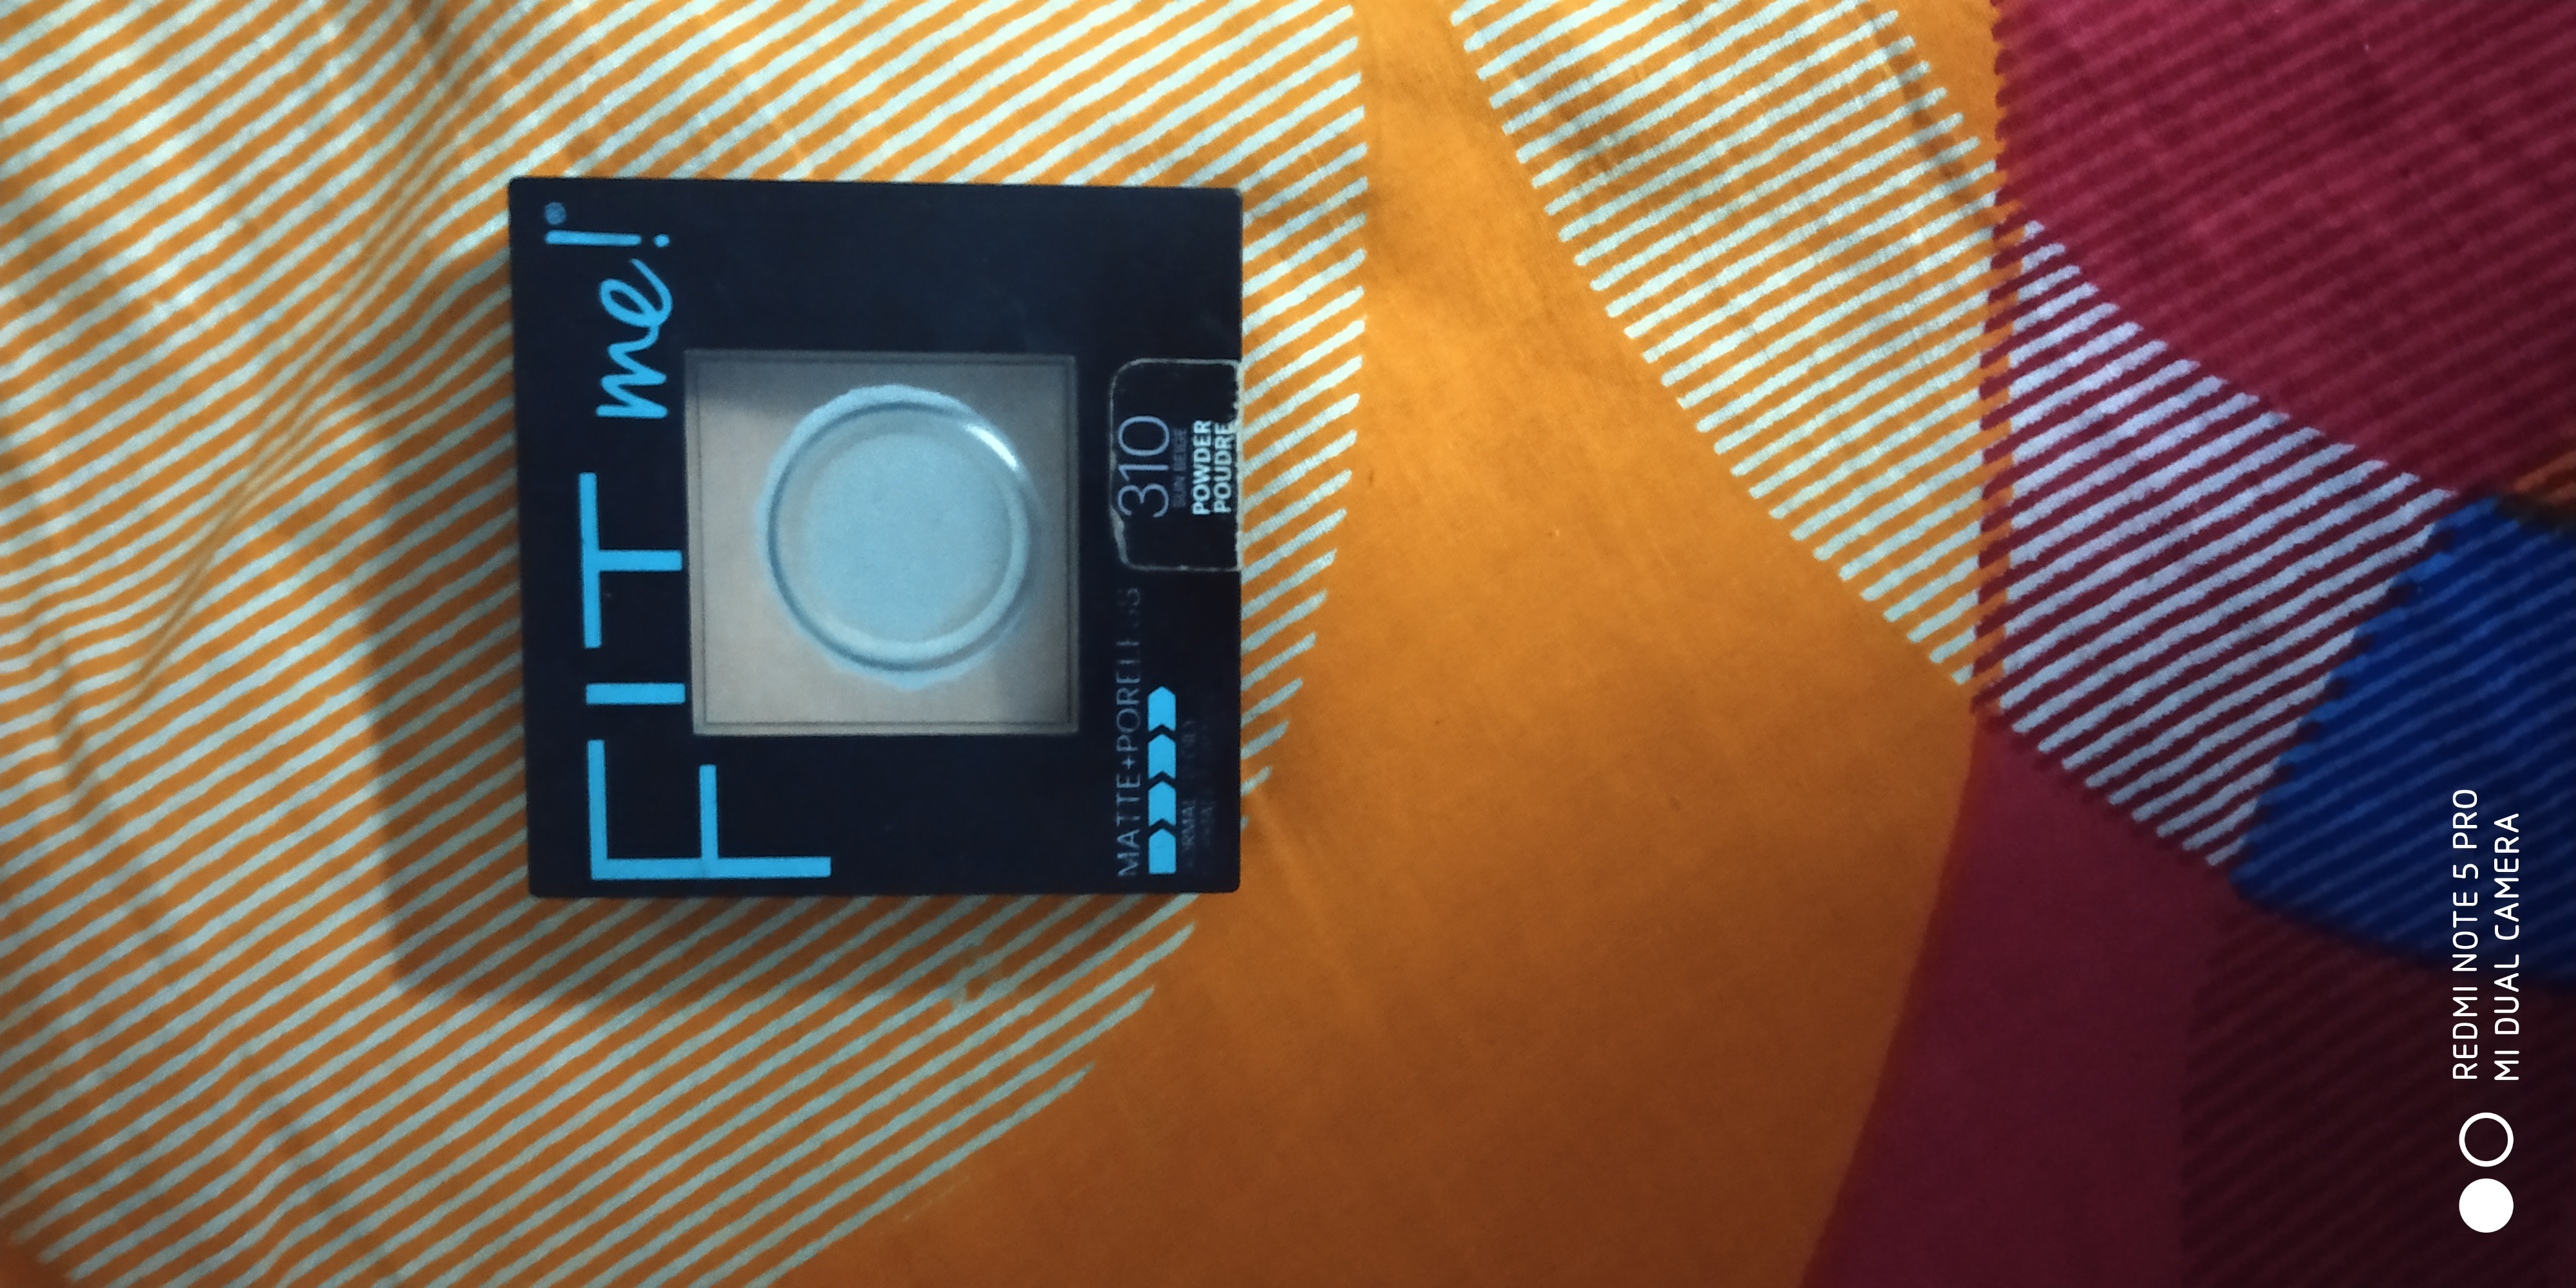 Maybelline Fit Me Matte And Poreless Powder -Amazing product-By priyadarshini_08